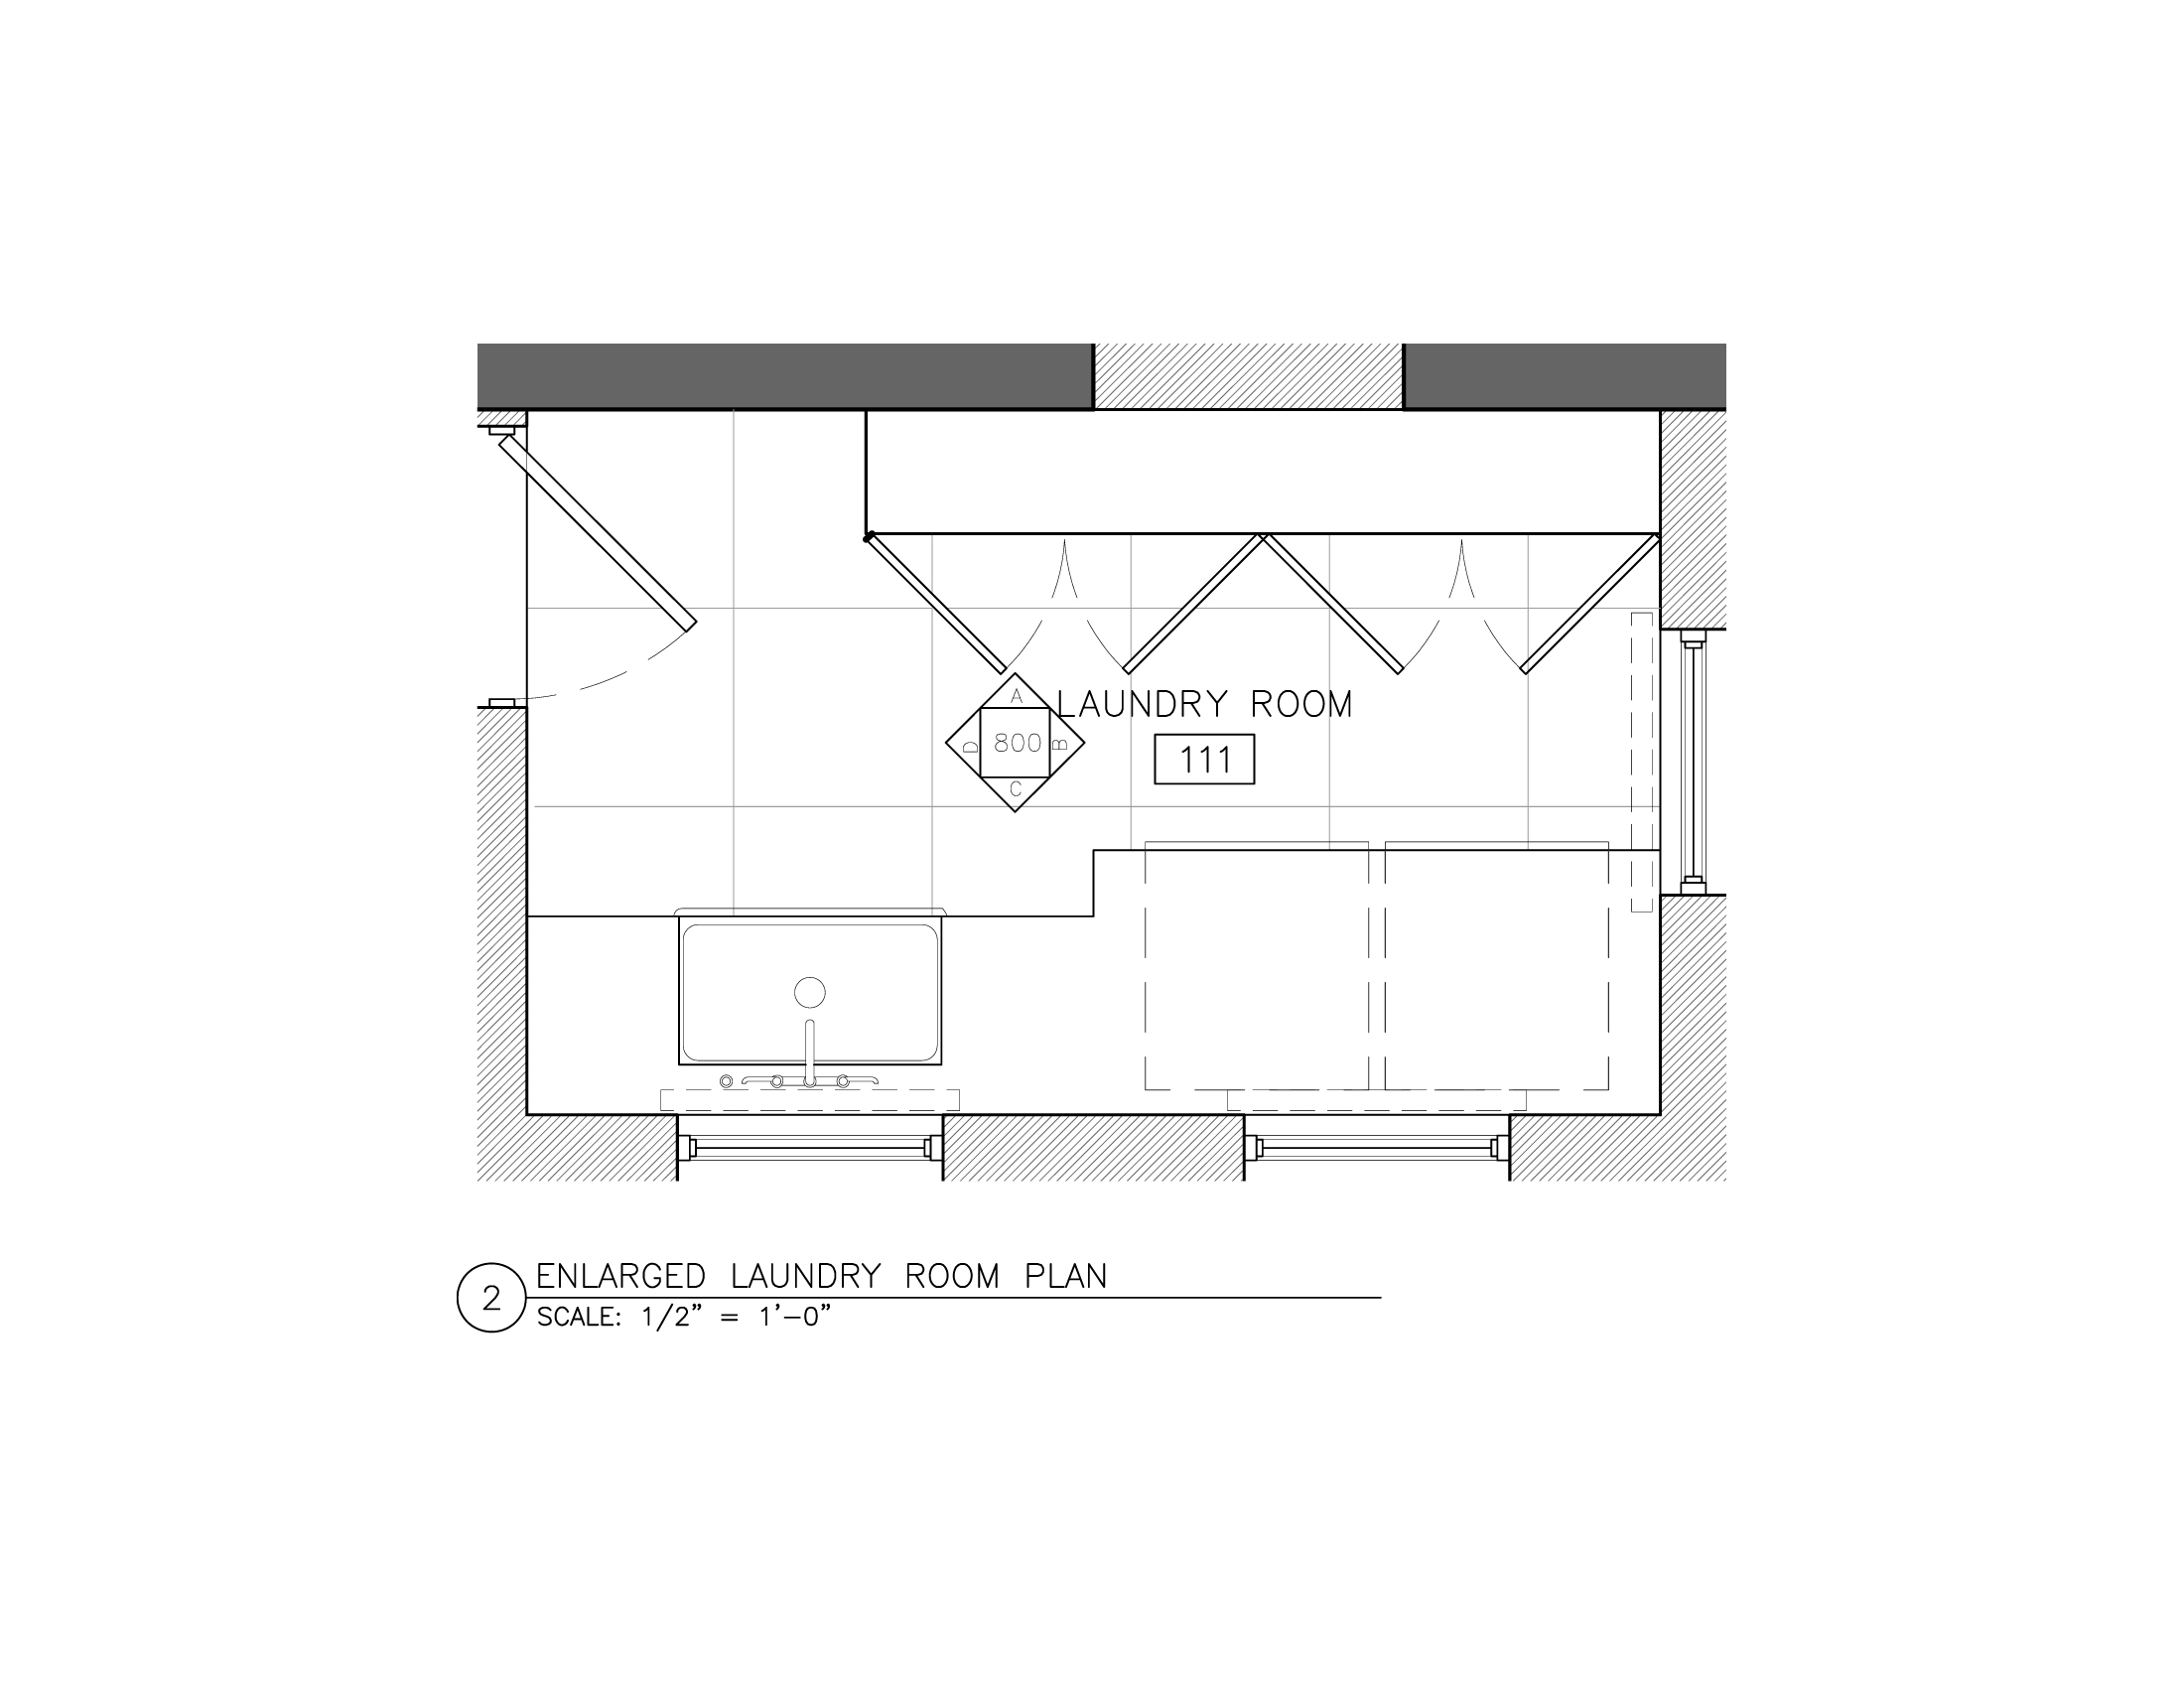 House plans with mudroom laundry rooms house plans for Mudroom laundry room floor plans